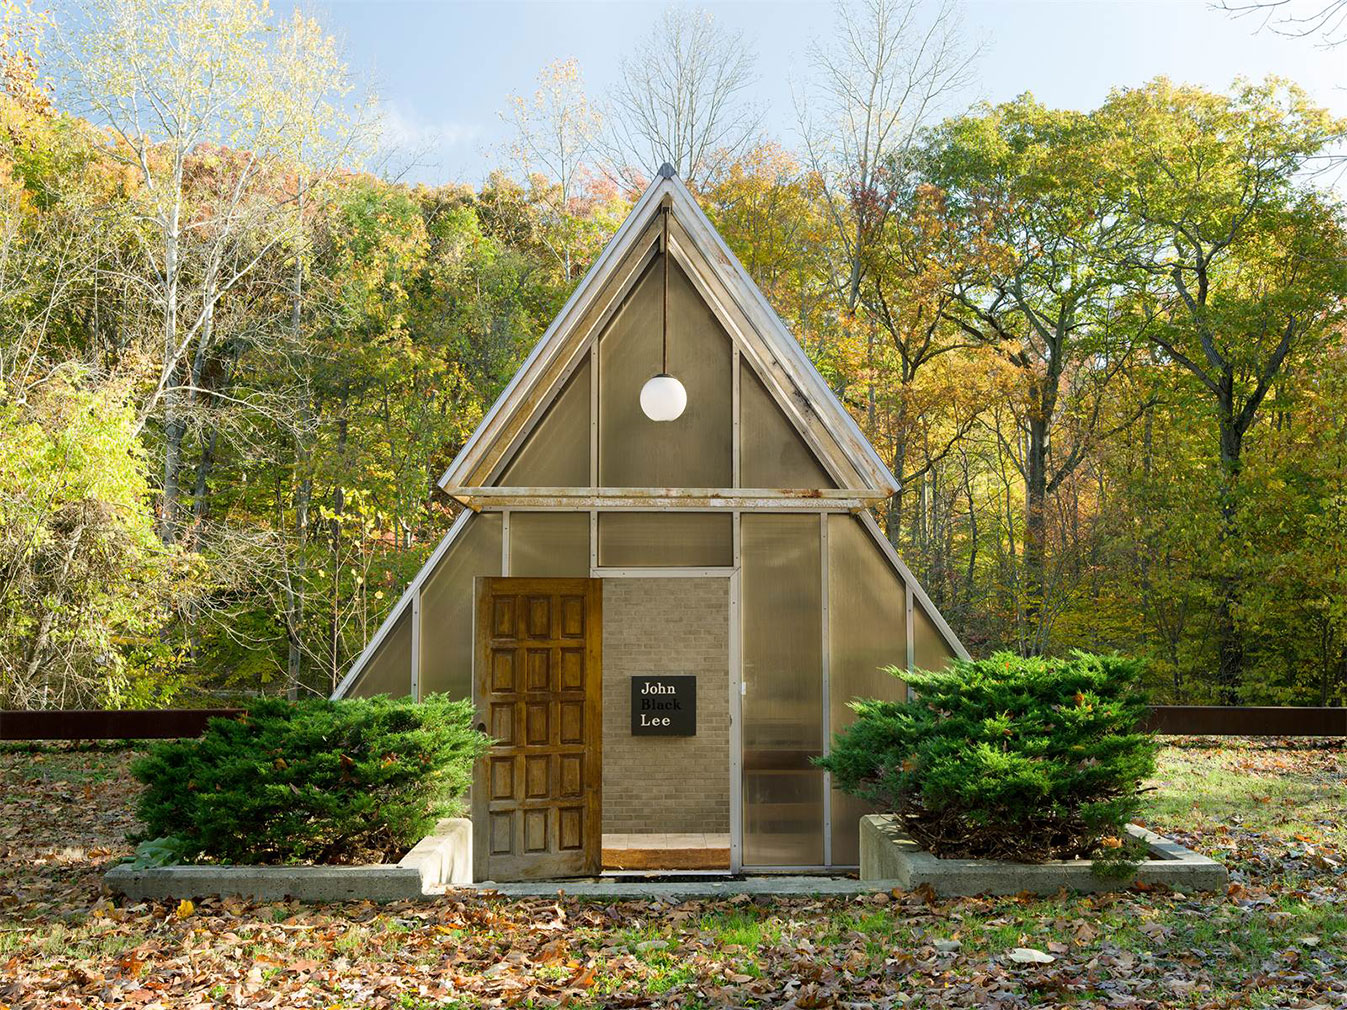 Architects Homes You Can Own - Architect designed homes for sale